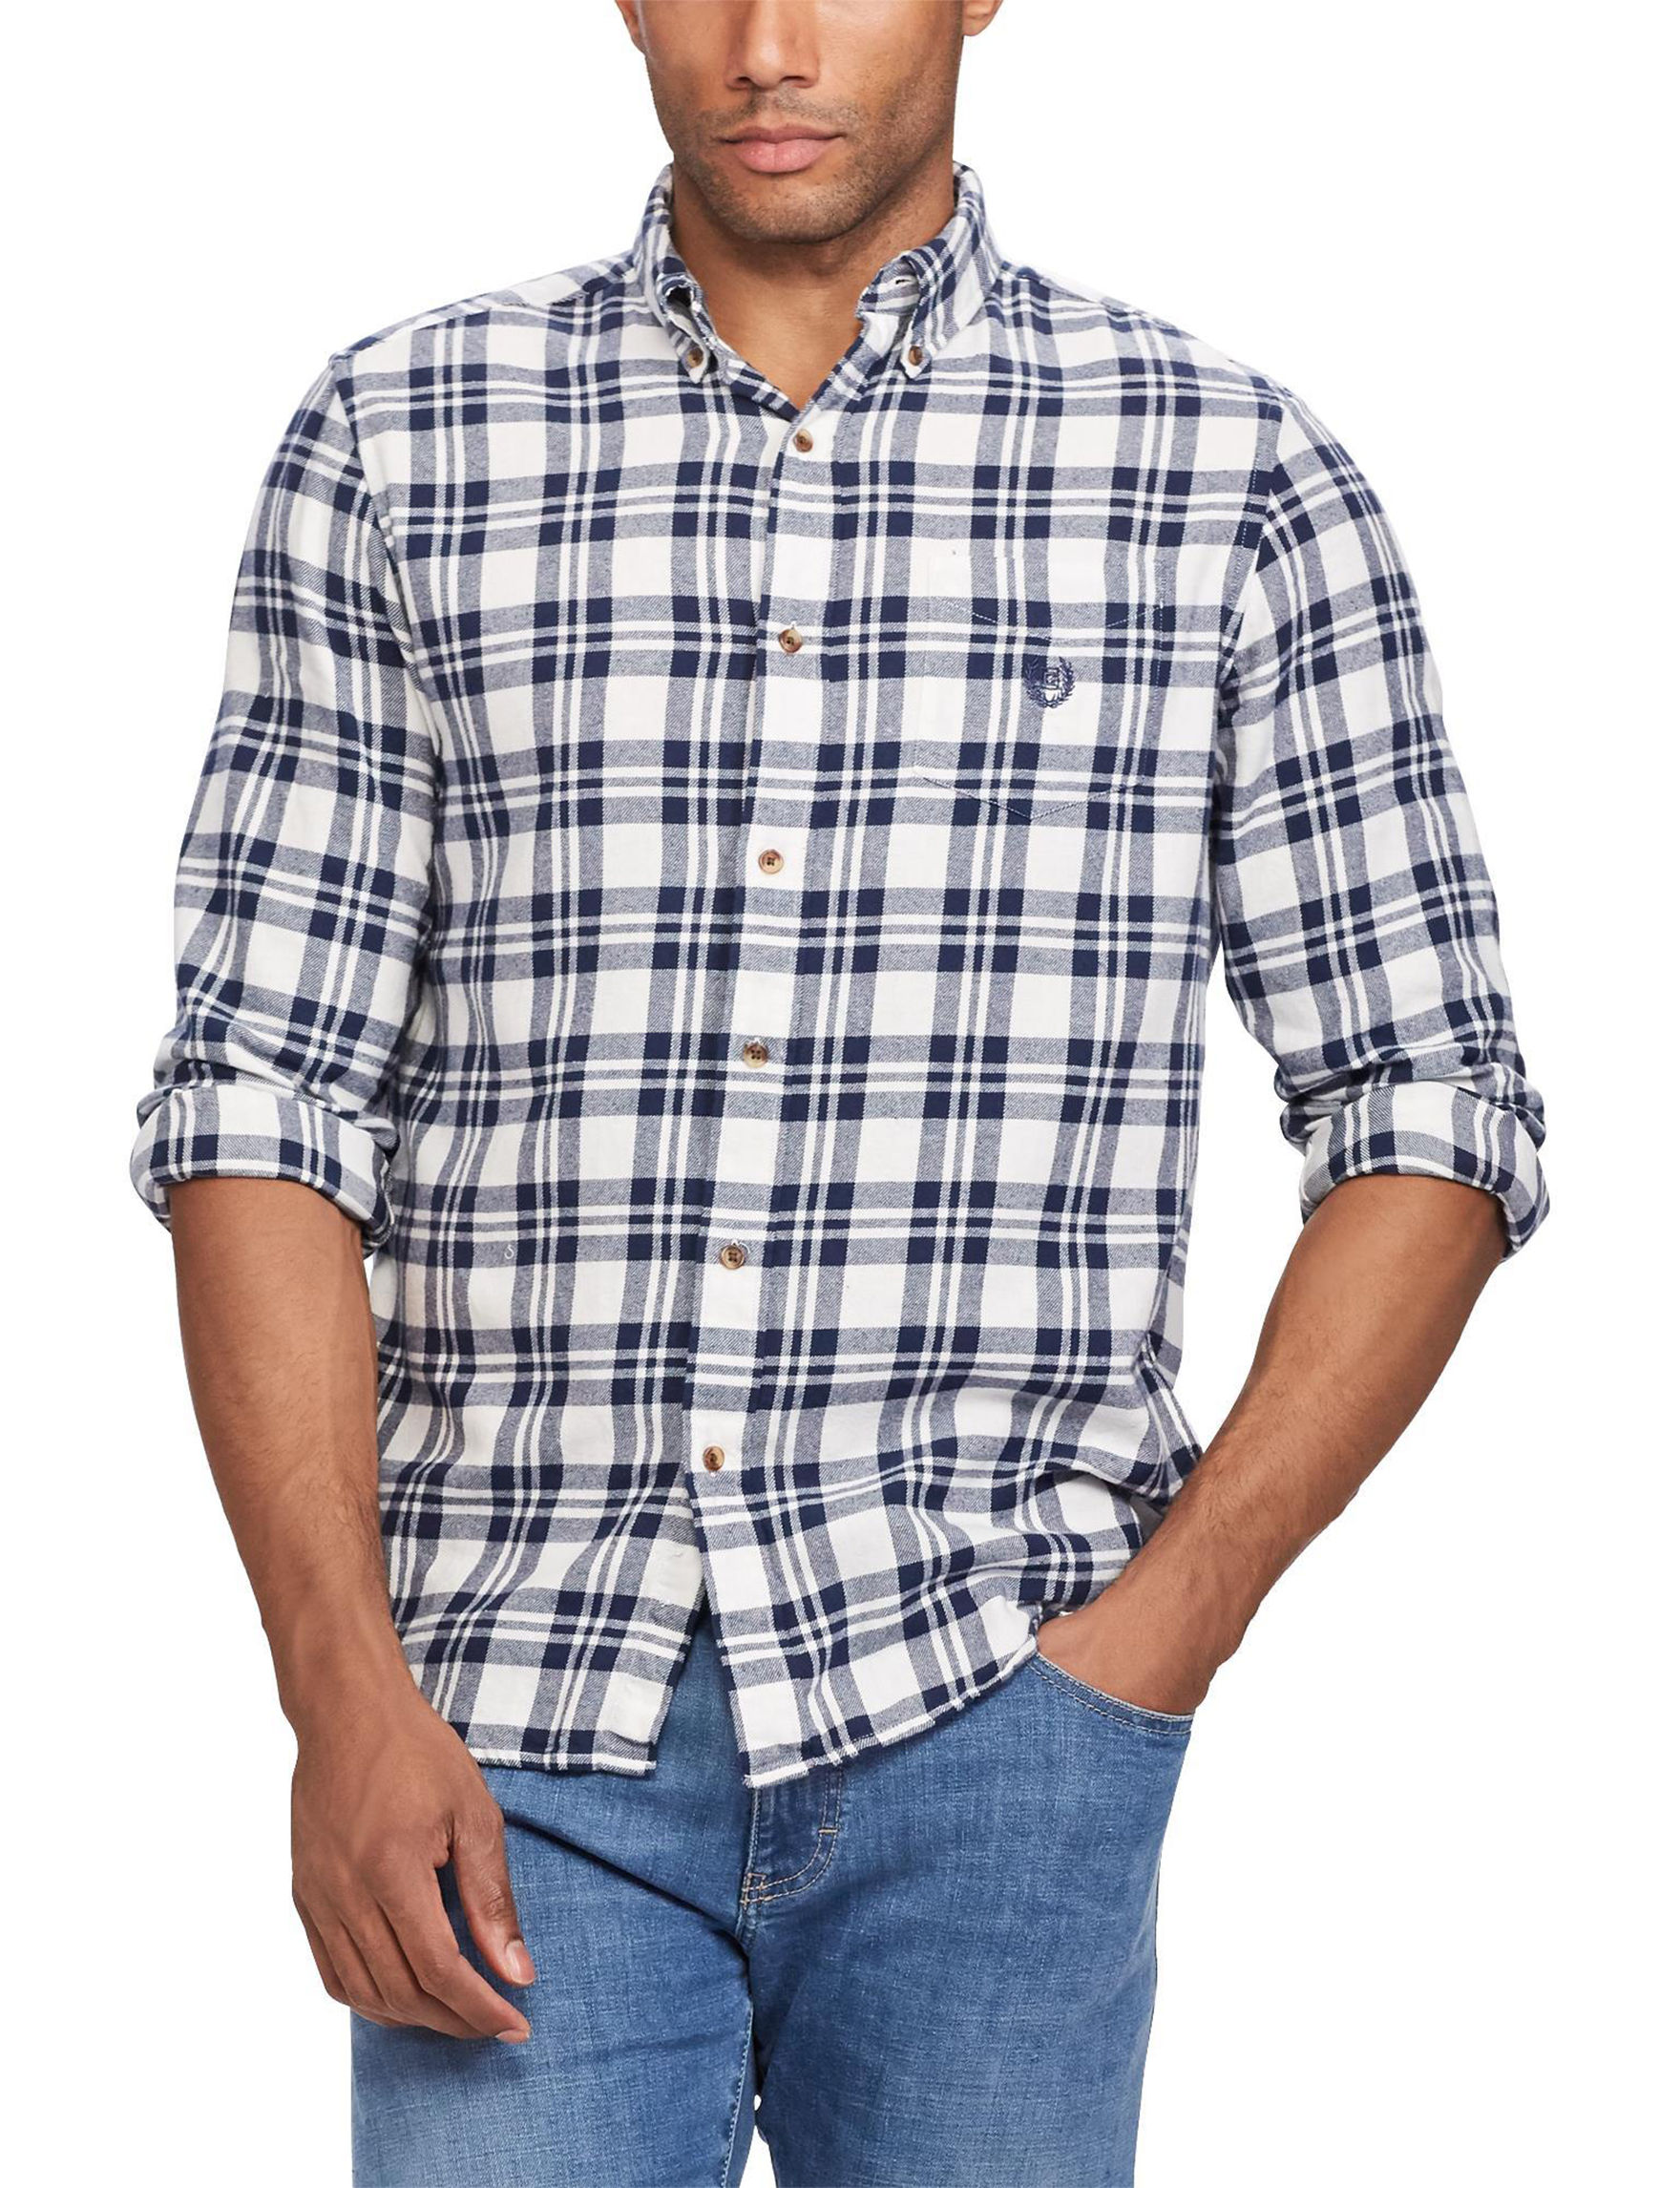 Chaps White / Navy Casual Button Down Shirts